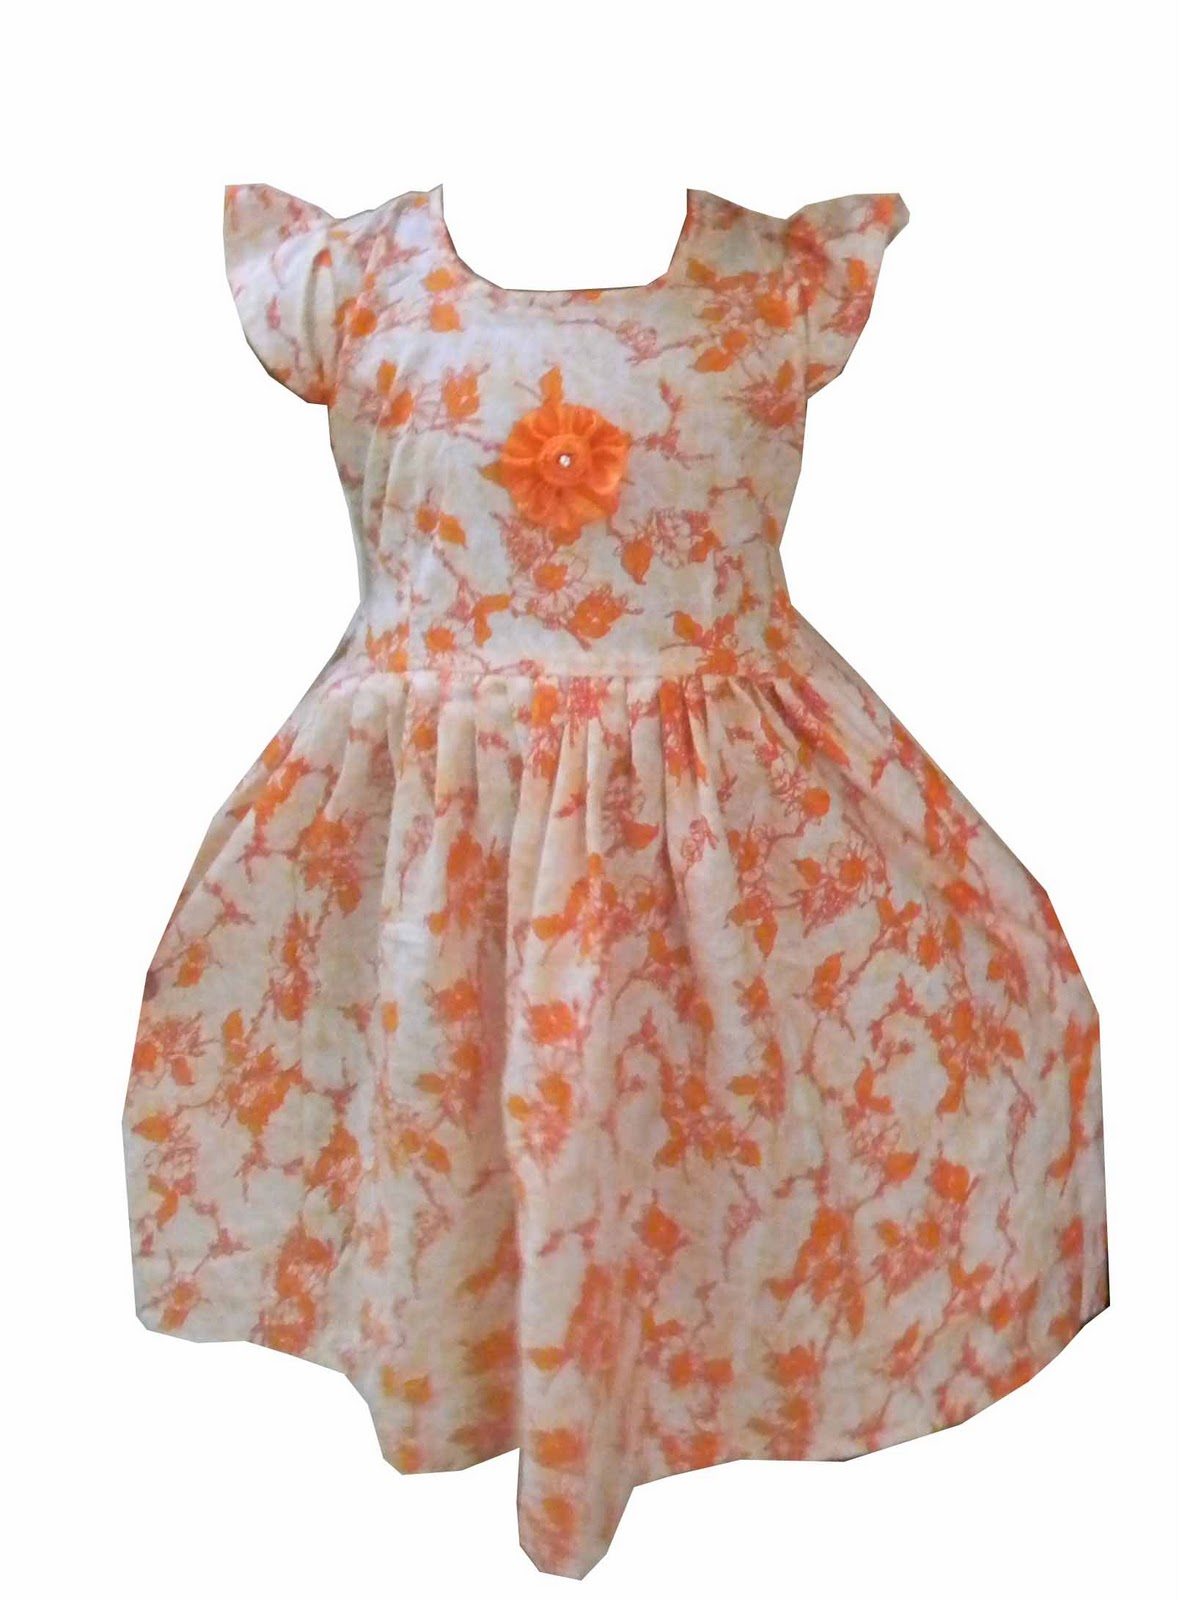 From newborn to size 12 girls heirloom gowns, dresses, pant and short sets.